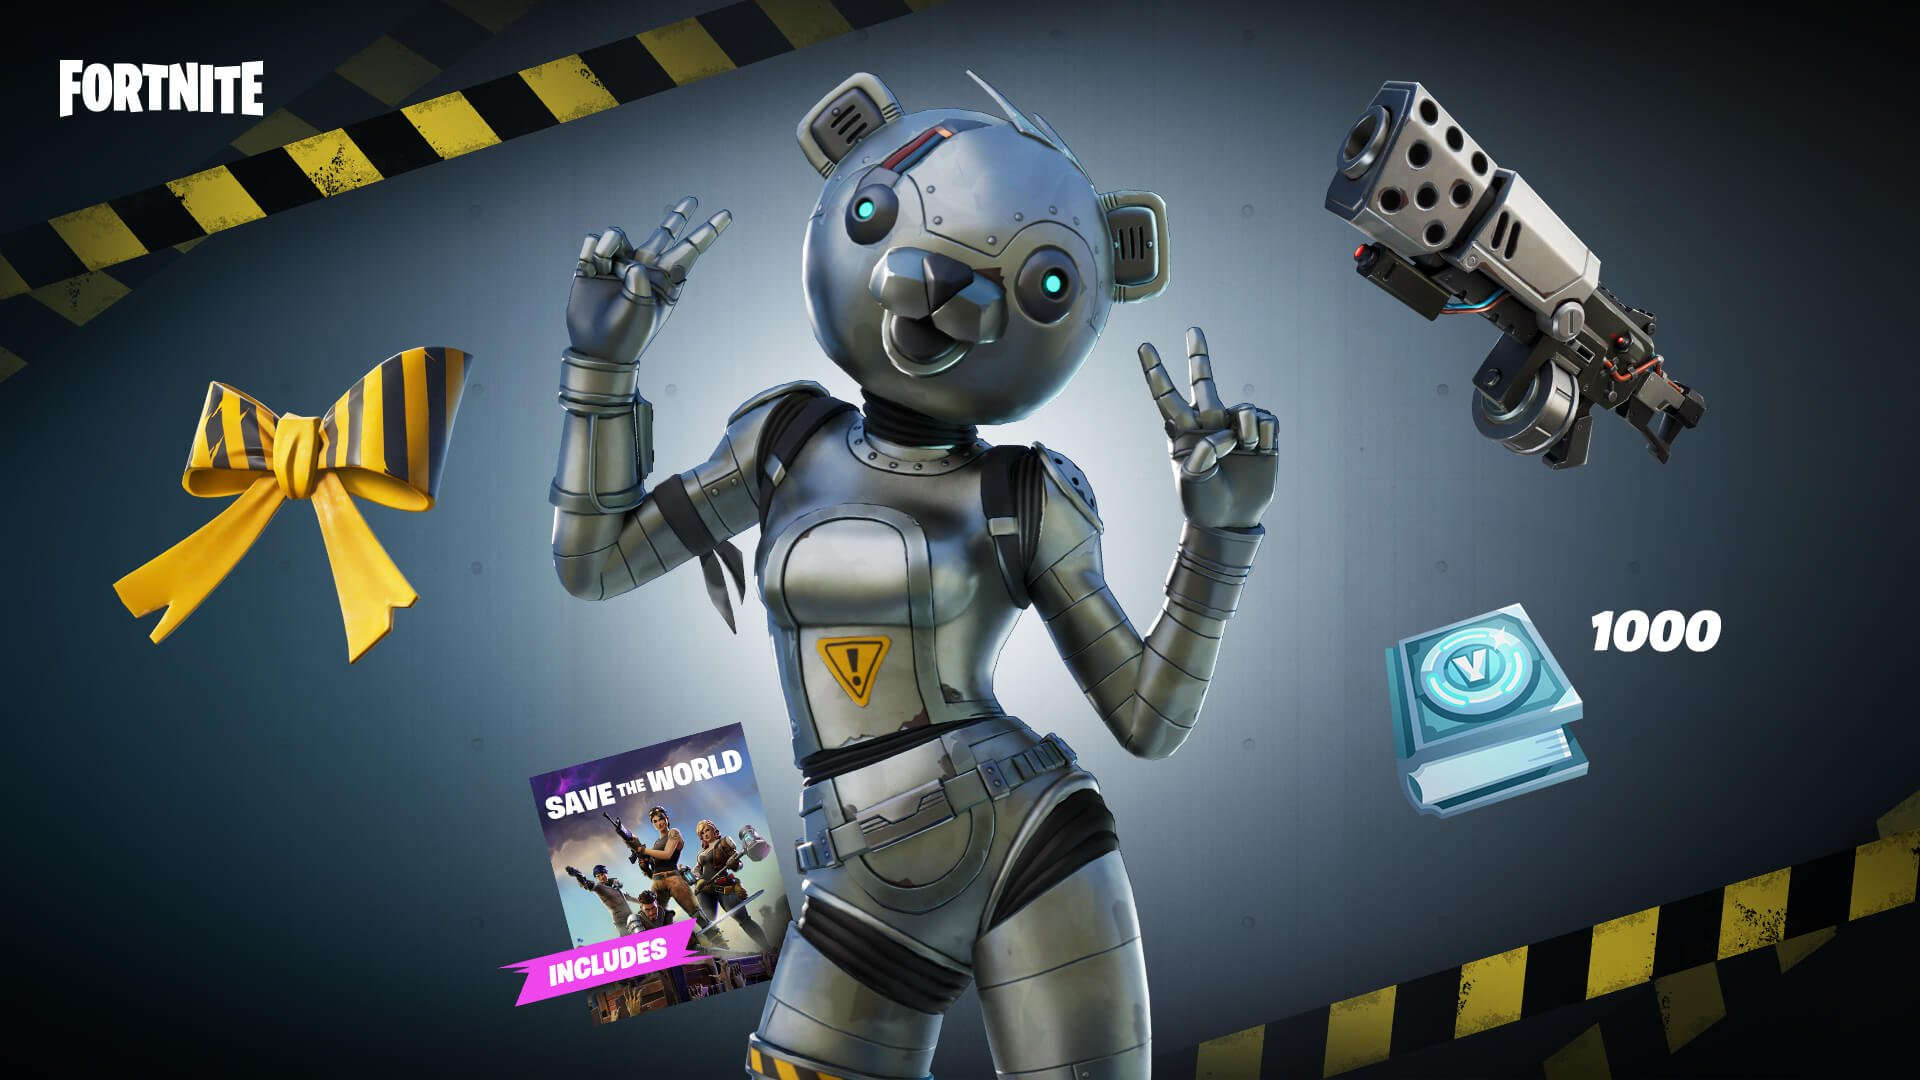 The Metal Team Leader Pack includes cosmetics like the Warning Bow Back Bling and access to new Metal Team Leader Challenges in Fortnite.